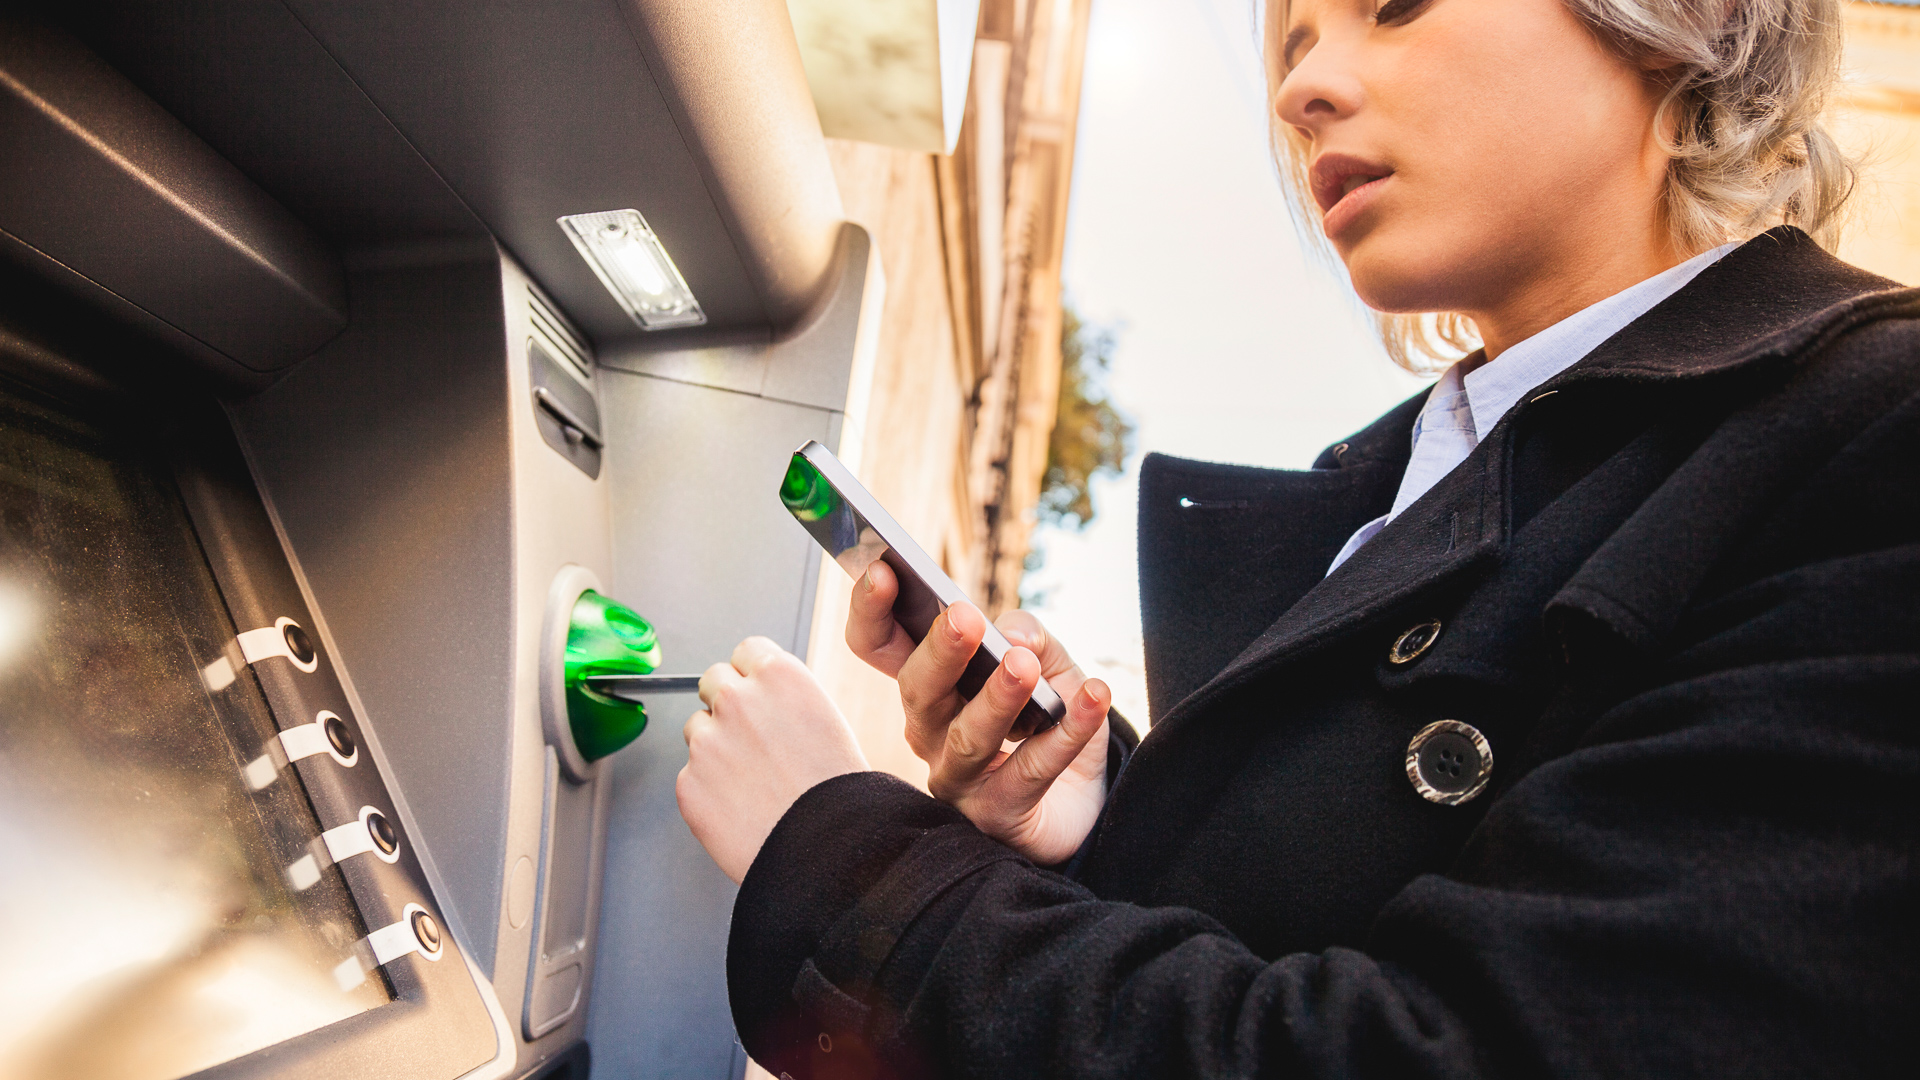 13 Banking Fees You Should Never Pay Gobankingrates Bank Of America Wiring Money Abroad What Does Overdrawn Mean